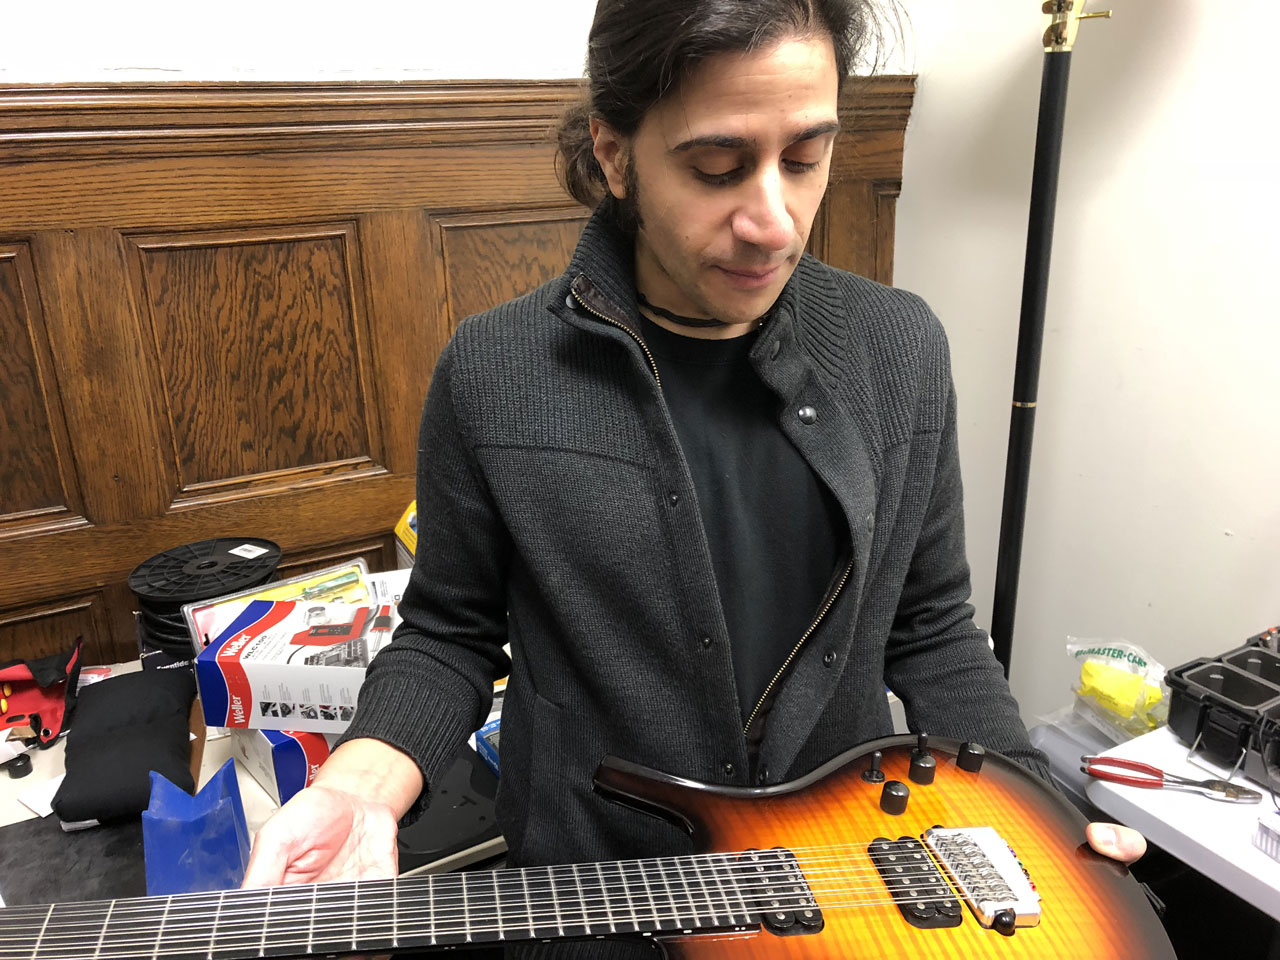 V.J. examining the Parker Fly 12-String Guitar in the lab